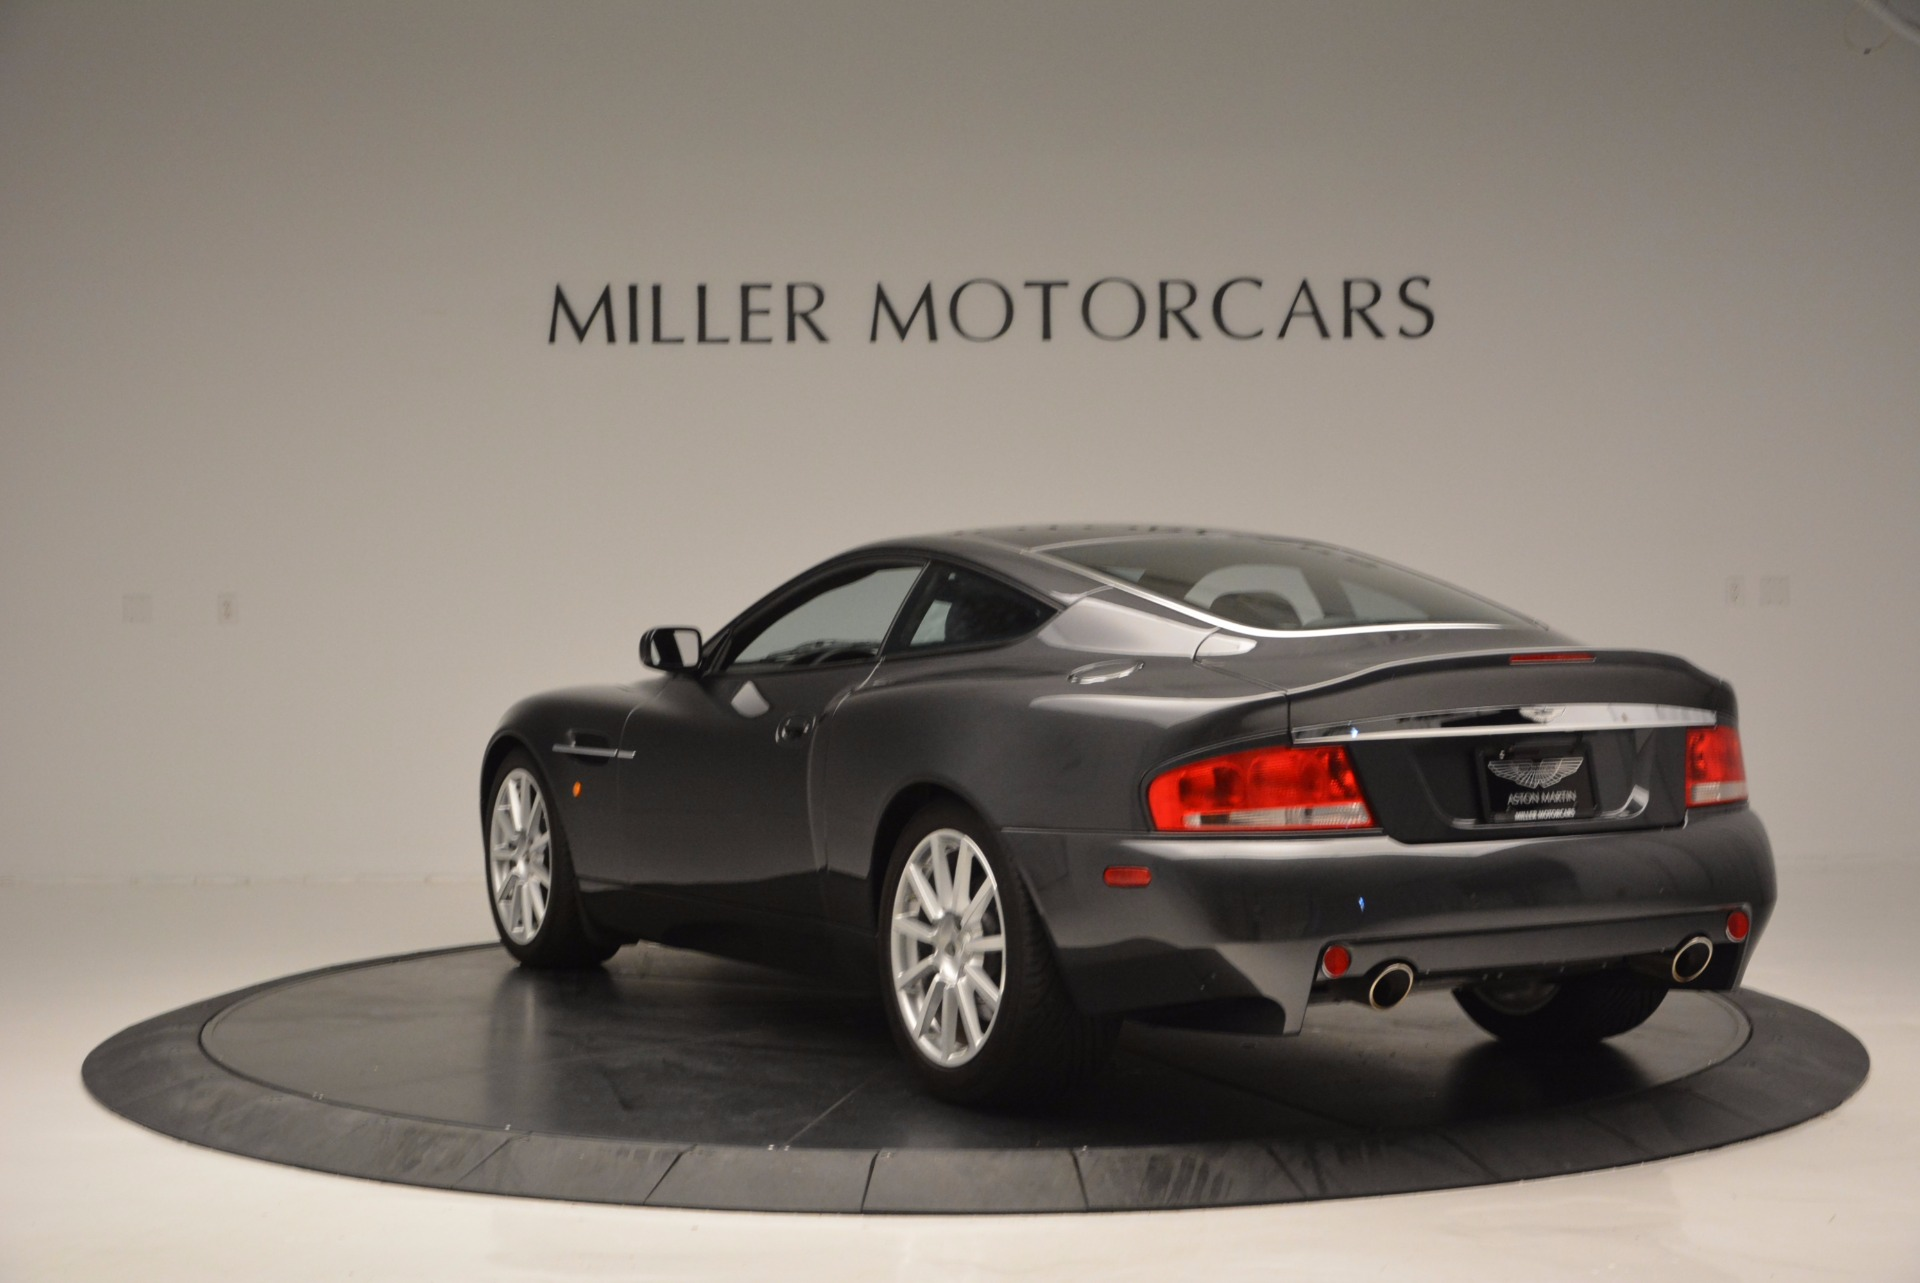 Used 2005 Aston Martin V12 Vanquish S For Sale In Westport, CT 645_p5